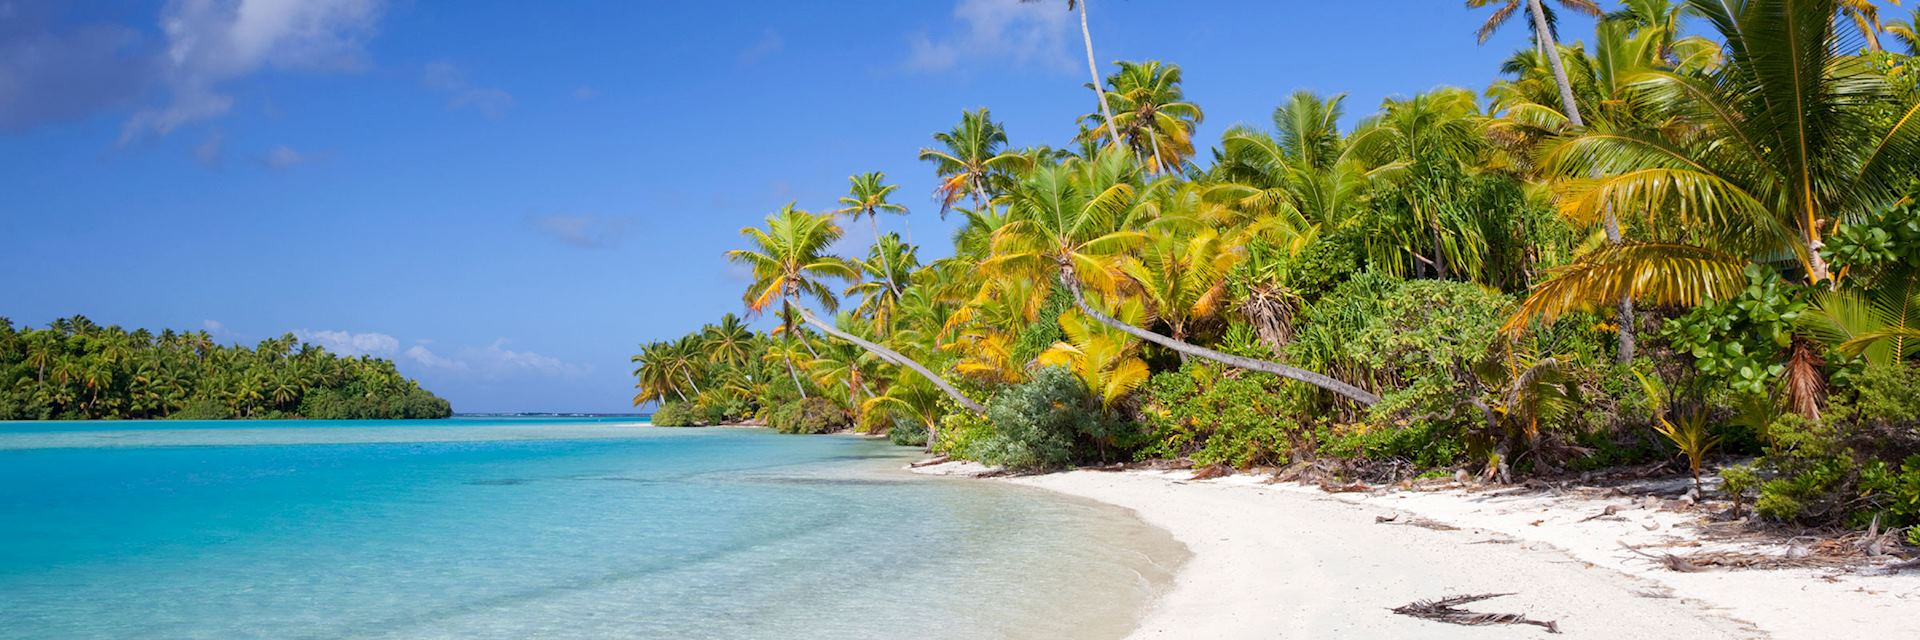 Onefoot Island in the Cook Islands